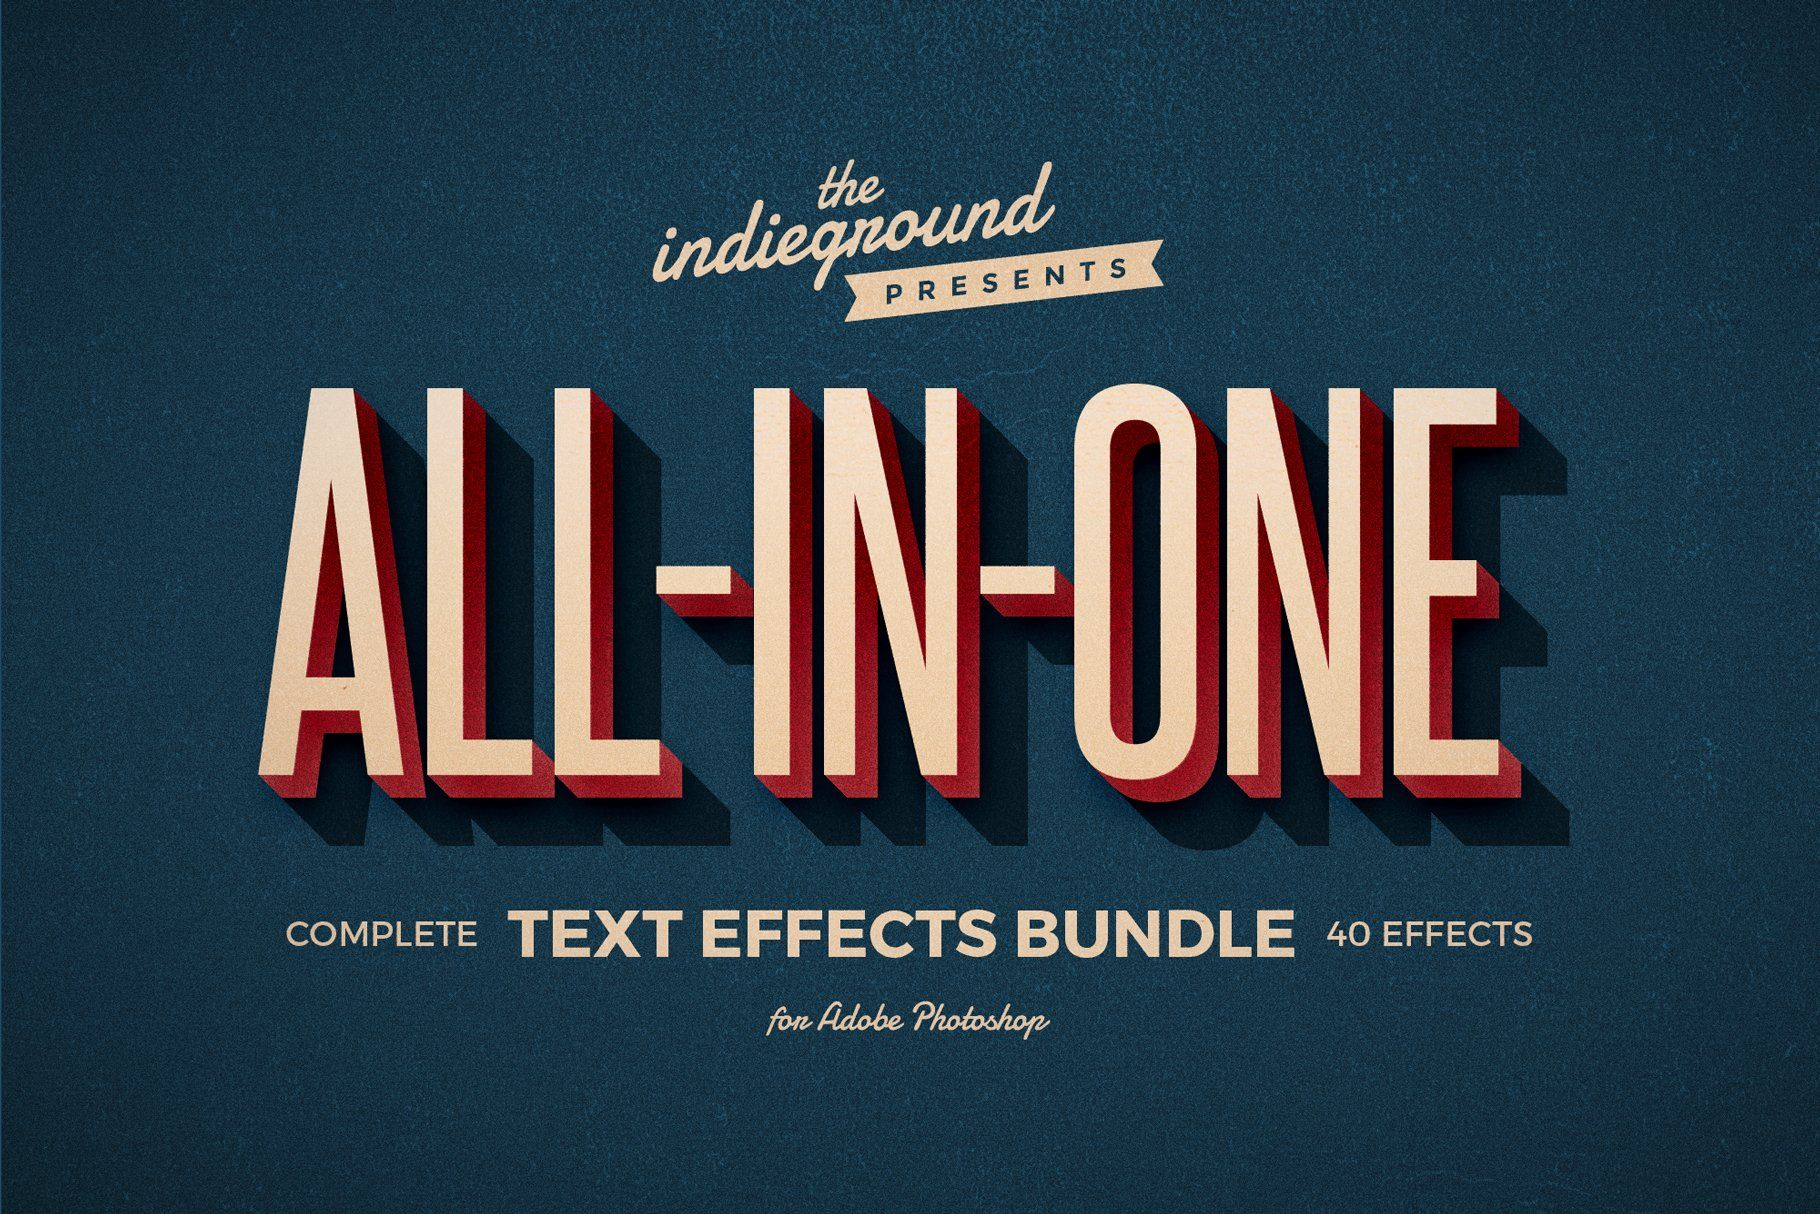 Retro Text Effects Complete Bundle In 2020 Retro Text Photoshop Retro Text Effects